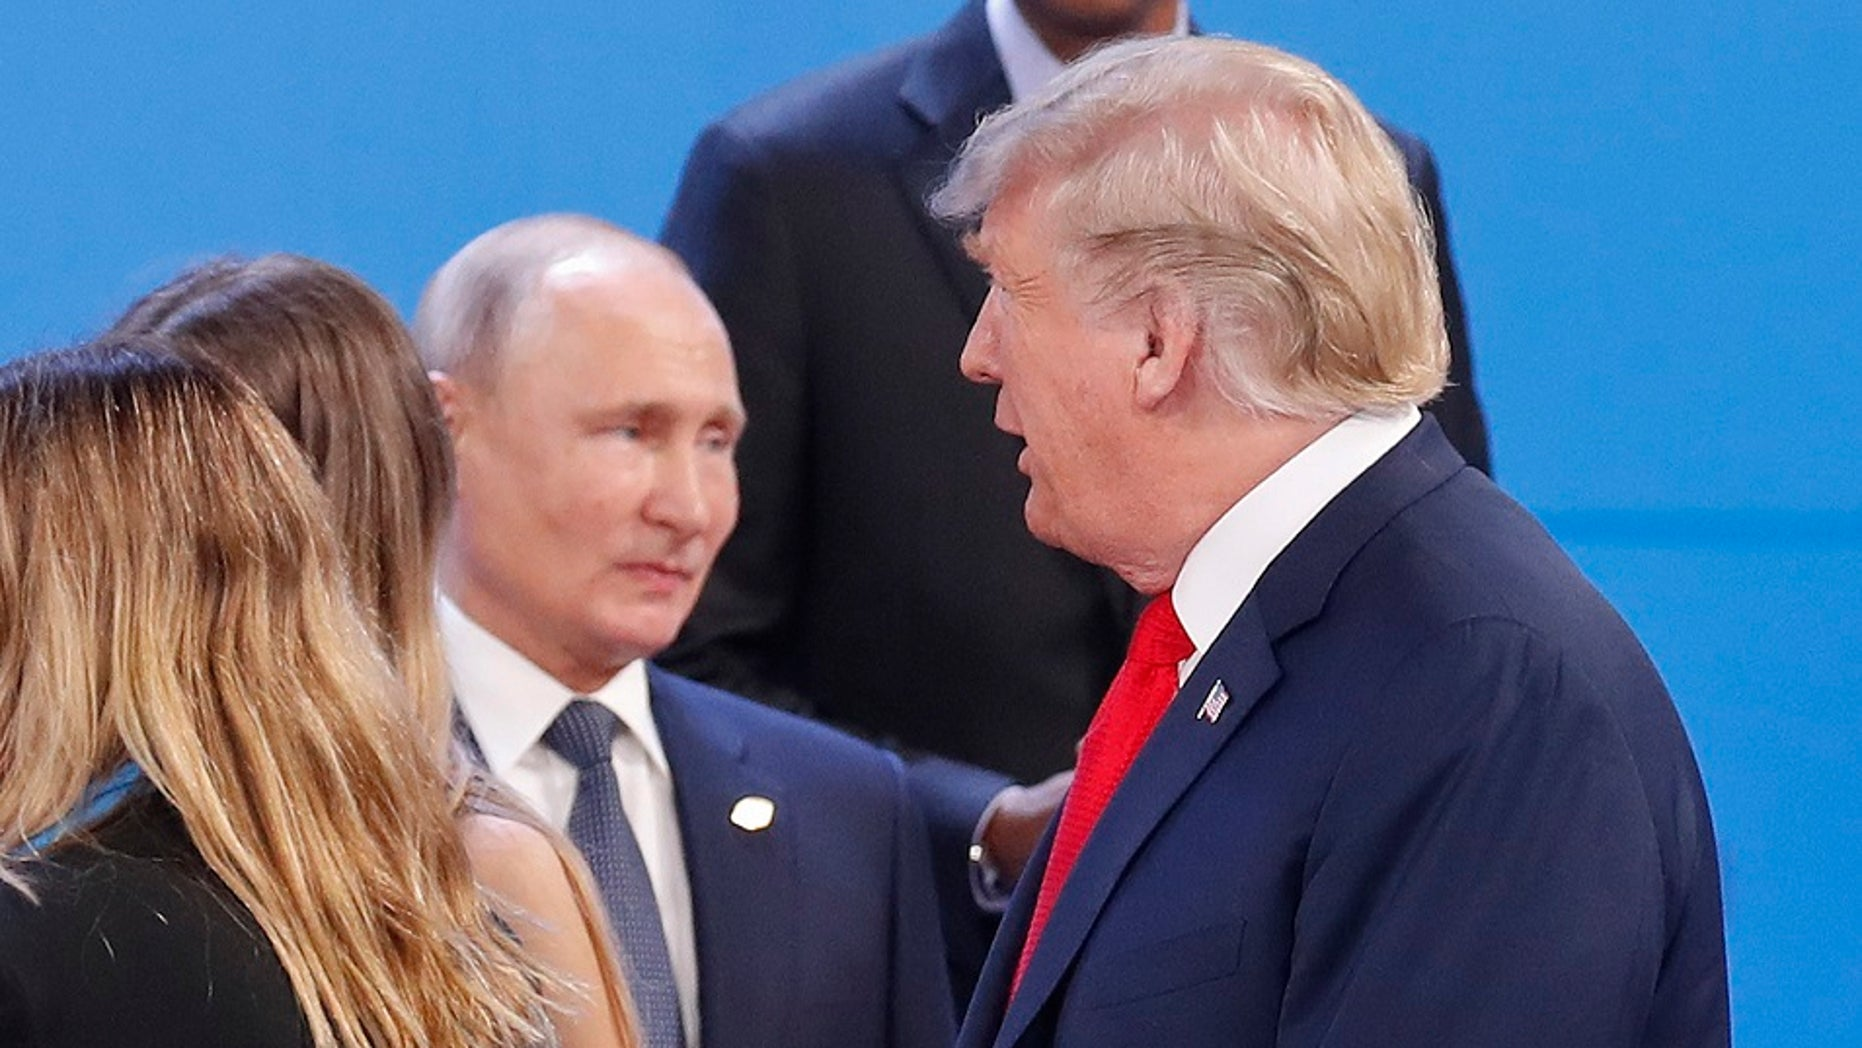 Russia's President Vladimir Putin, left, watches President Donald Trump, right, walk past him as they gather for the group photo at the start of the G20 summit in Buenos Aires, Argentina.